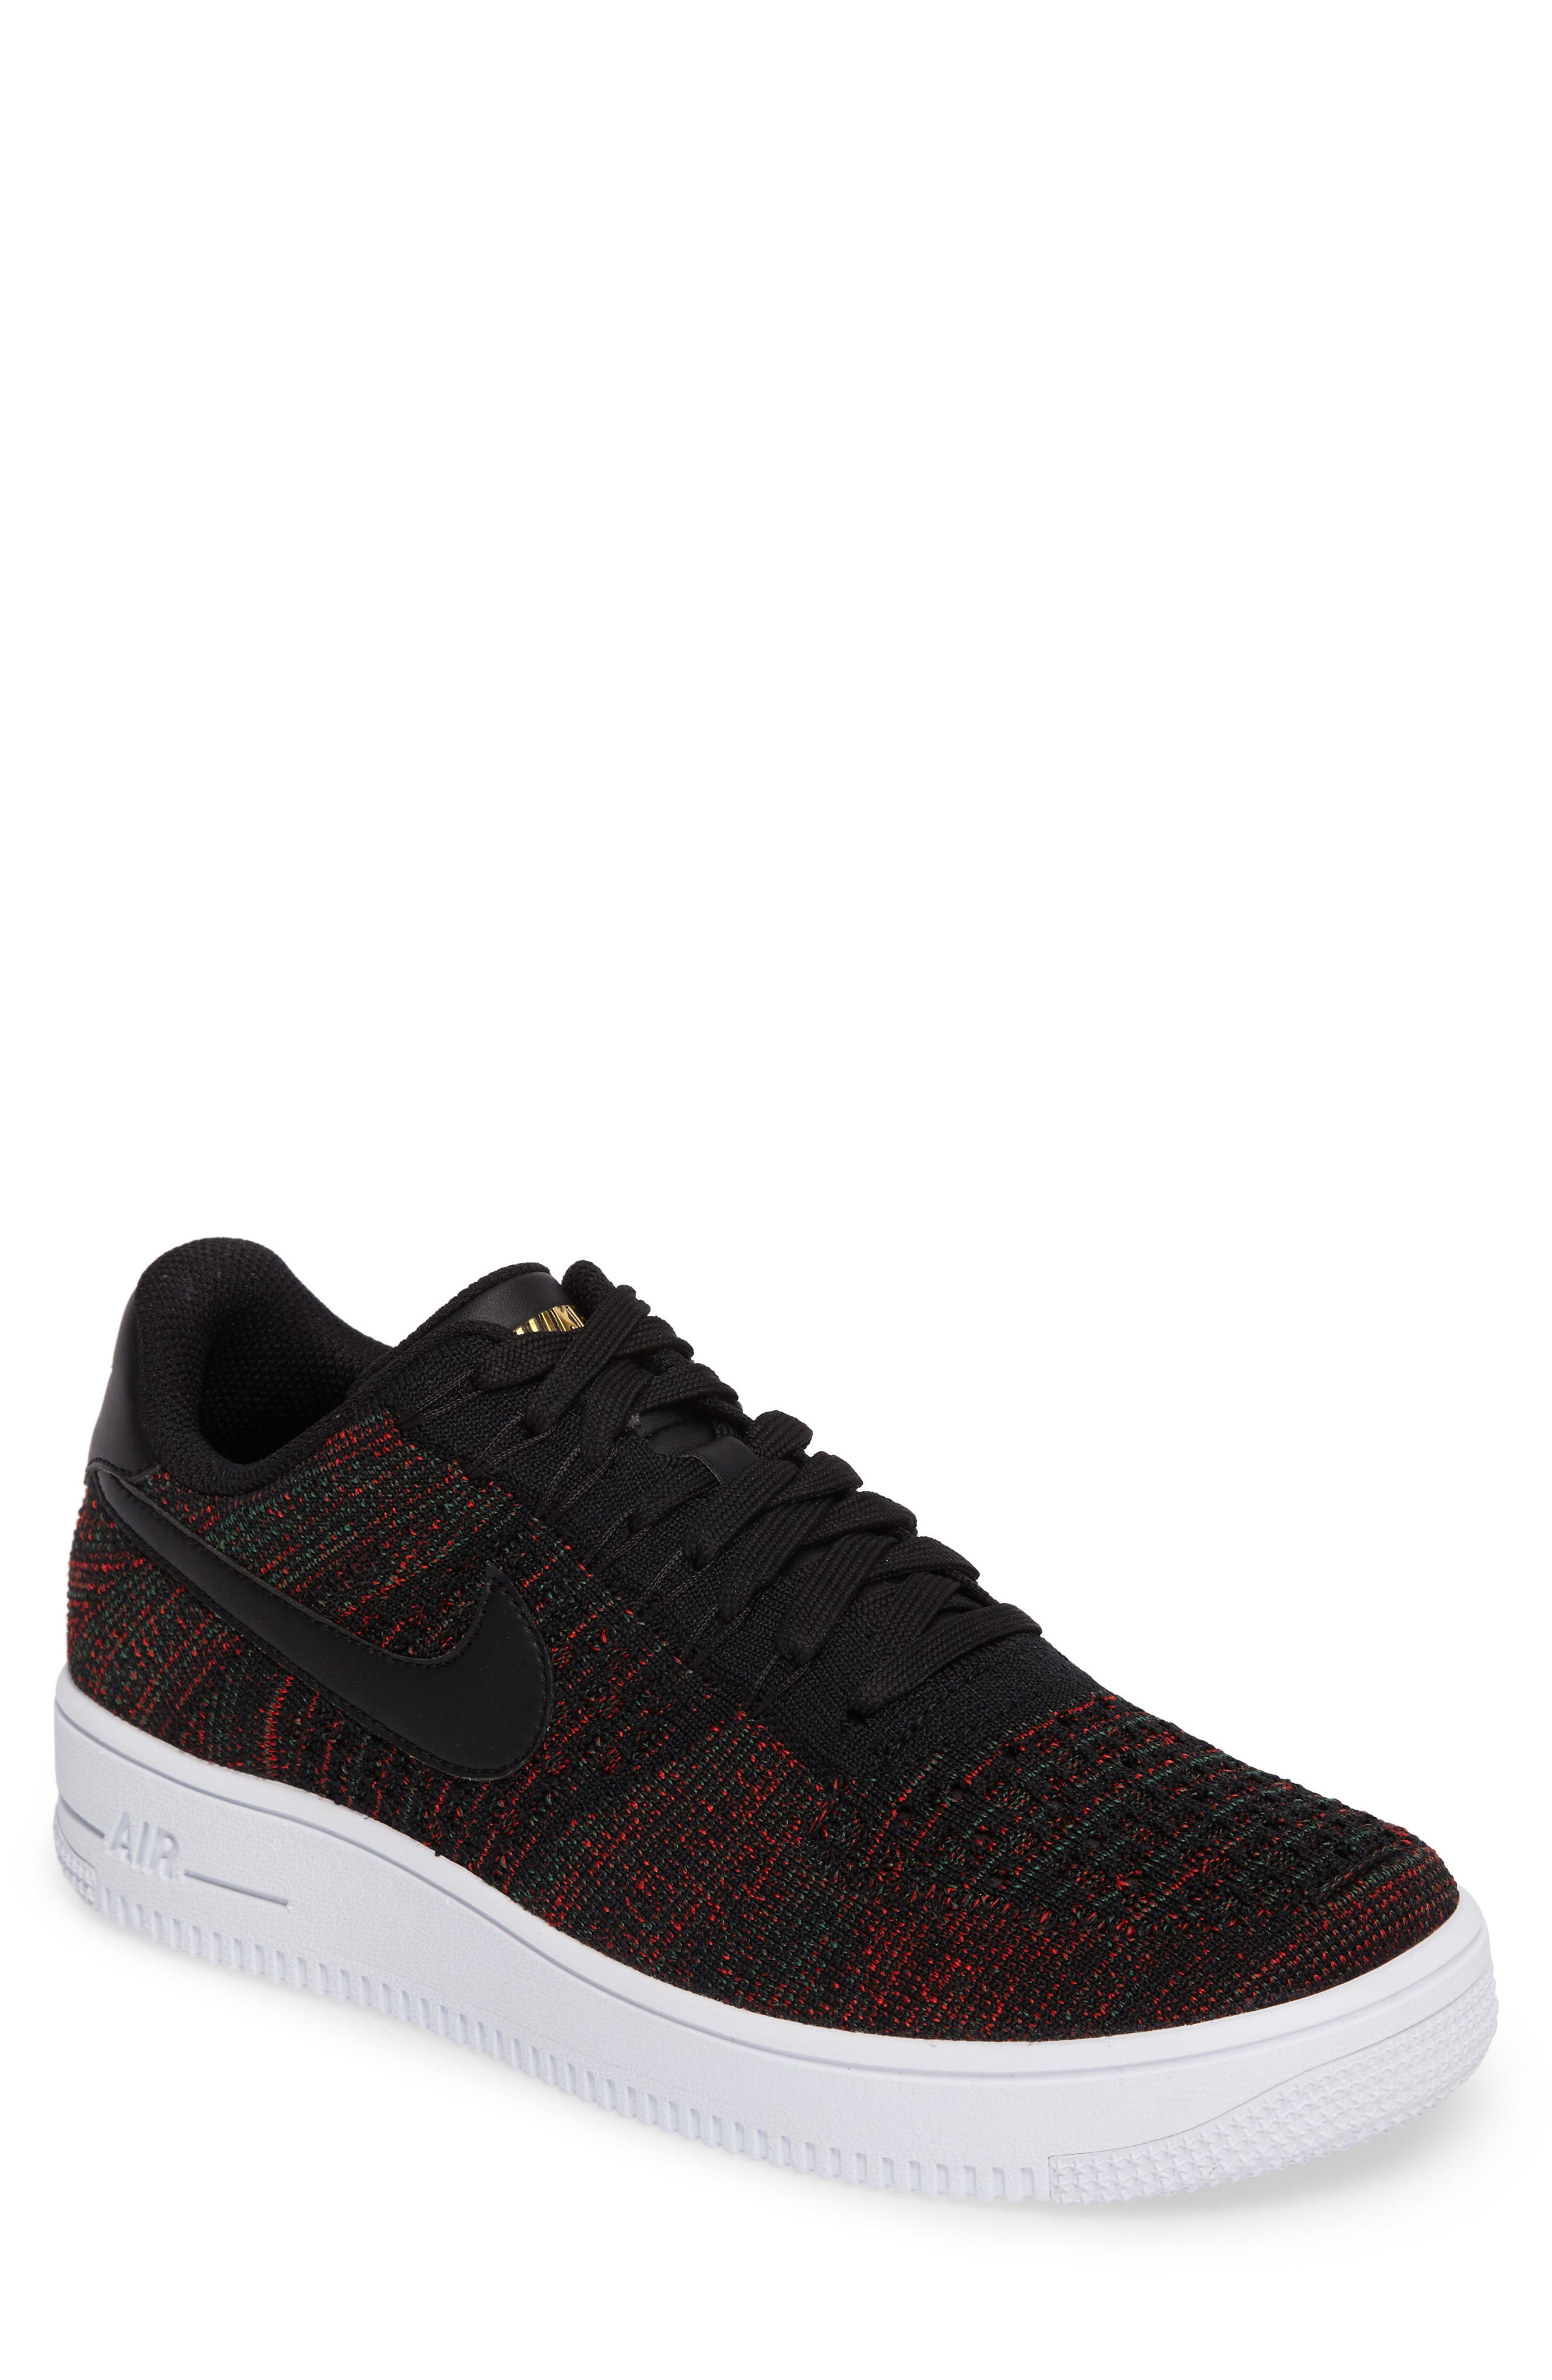 Air Force 1 Ultra Flyknit Low Sneaker,                             Main thumbnail 1, color,                             005